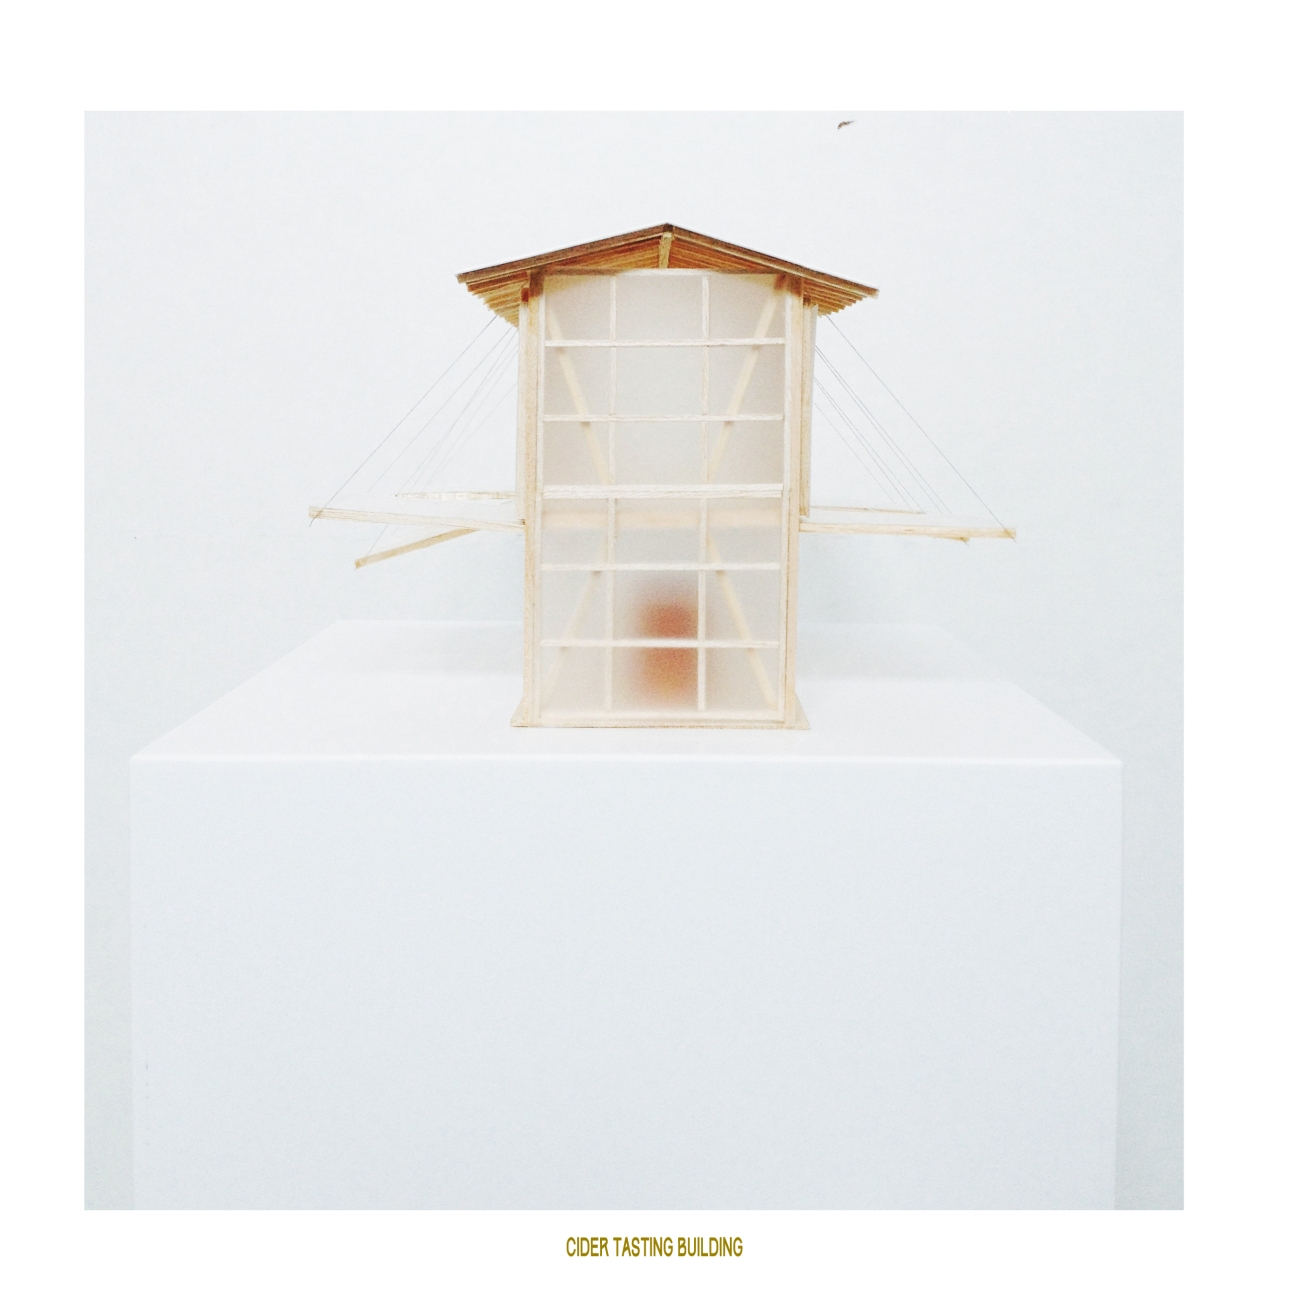 Orchard farm with cider factory,Sonia Dubois,student,4th year,University of Arts Poznan, bachelor of architecture_12